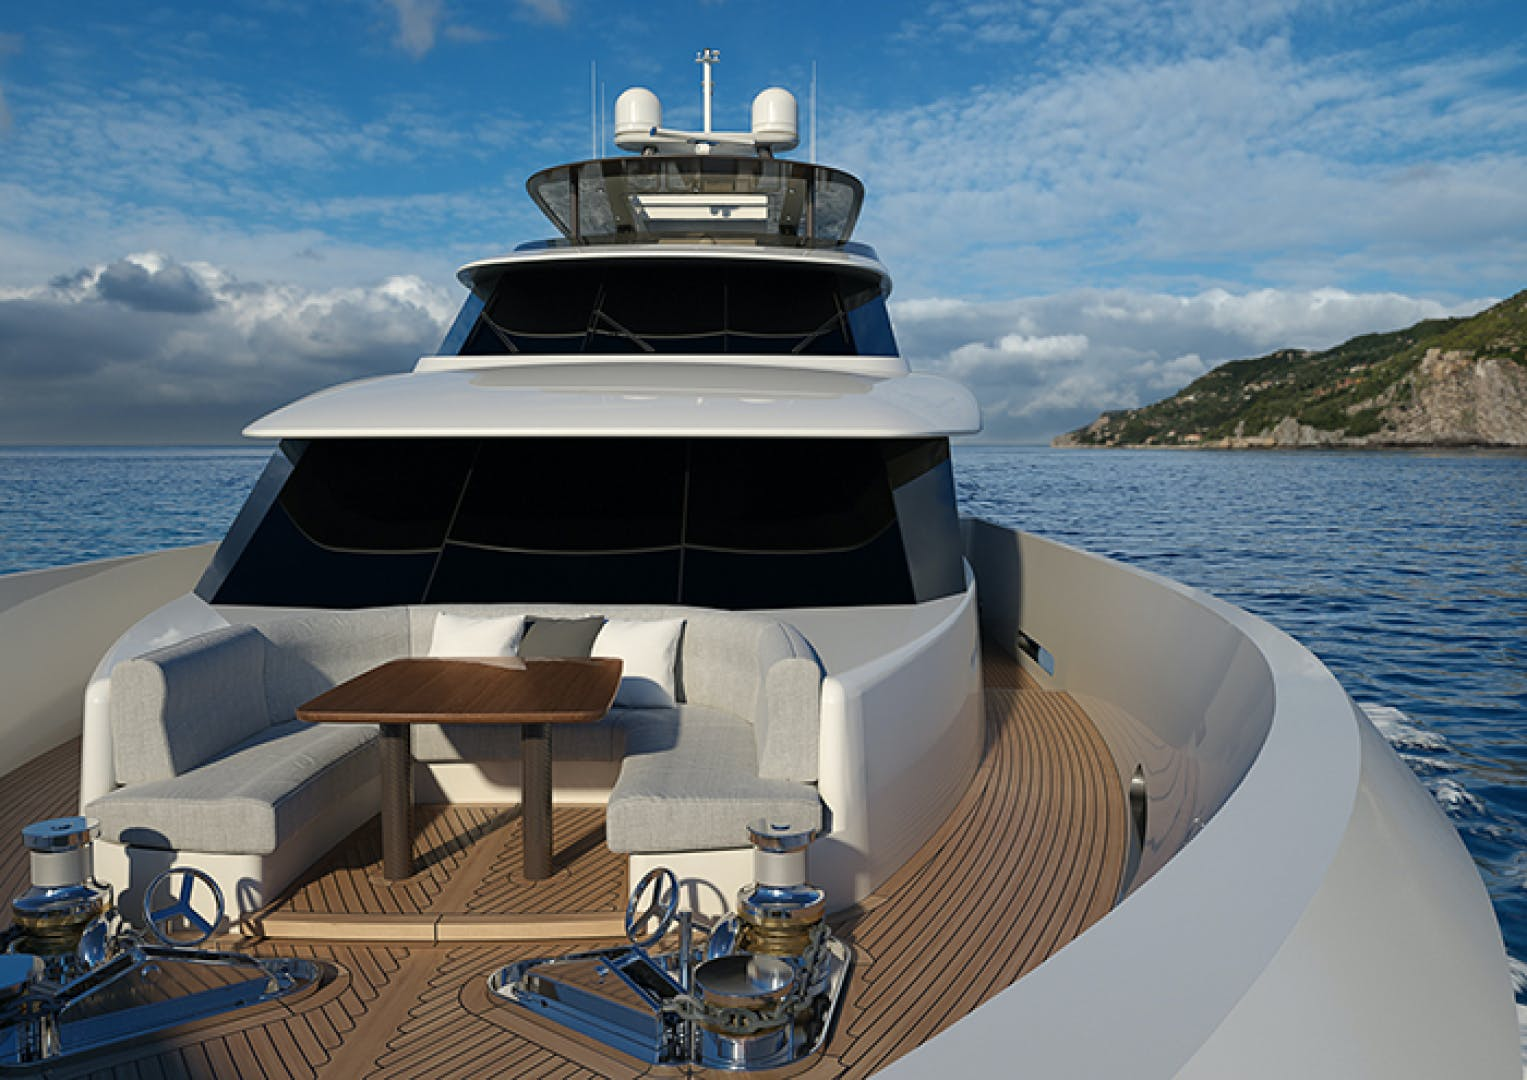 2022 Crescent 110' 110 Fast Pilothouse Yacht CRESCENT 110 | Picture 6 of 13